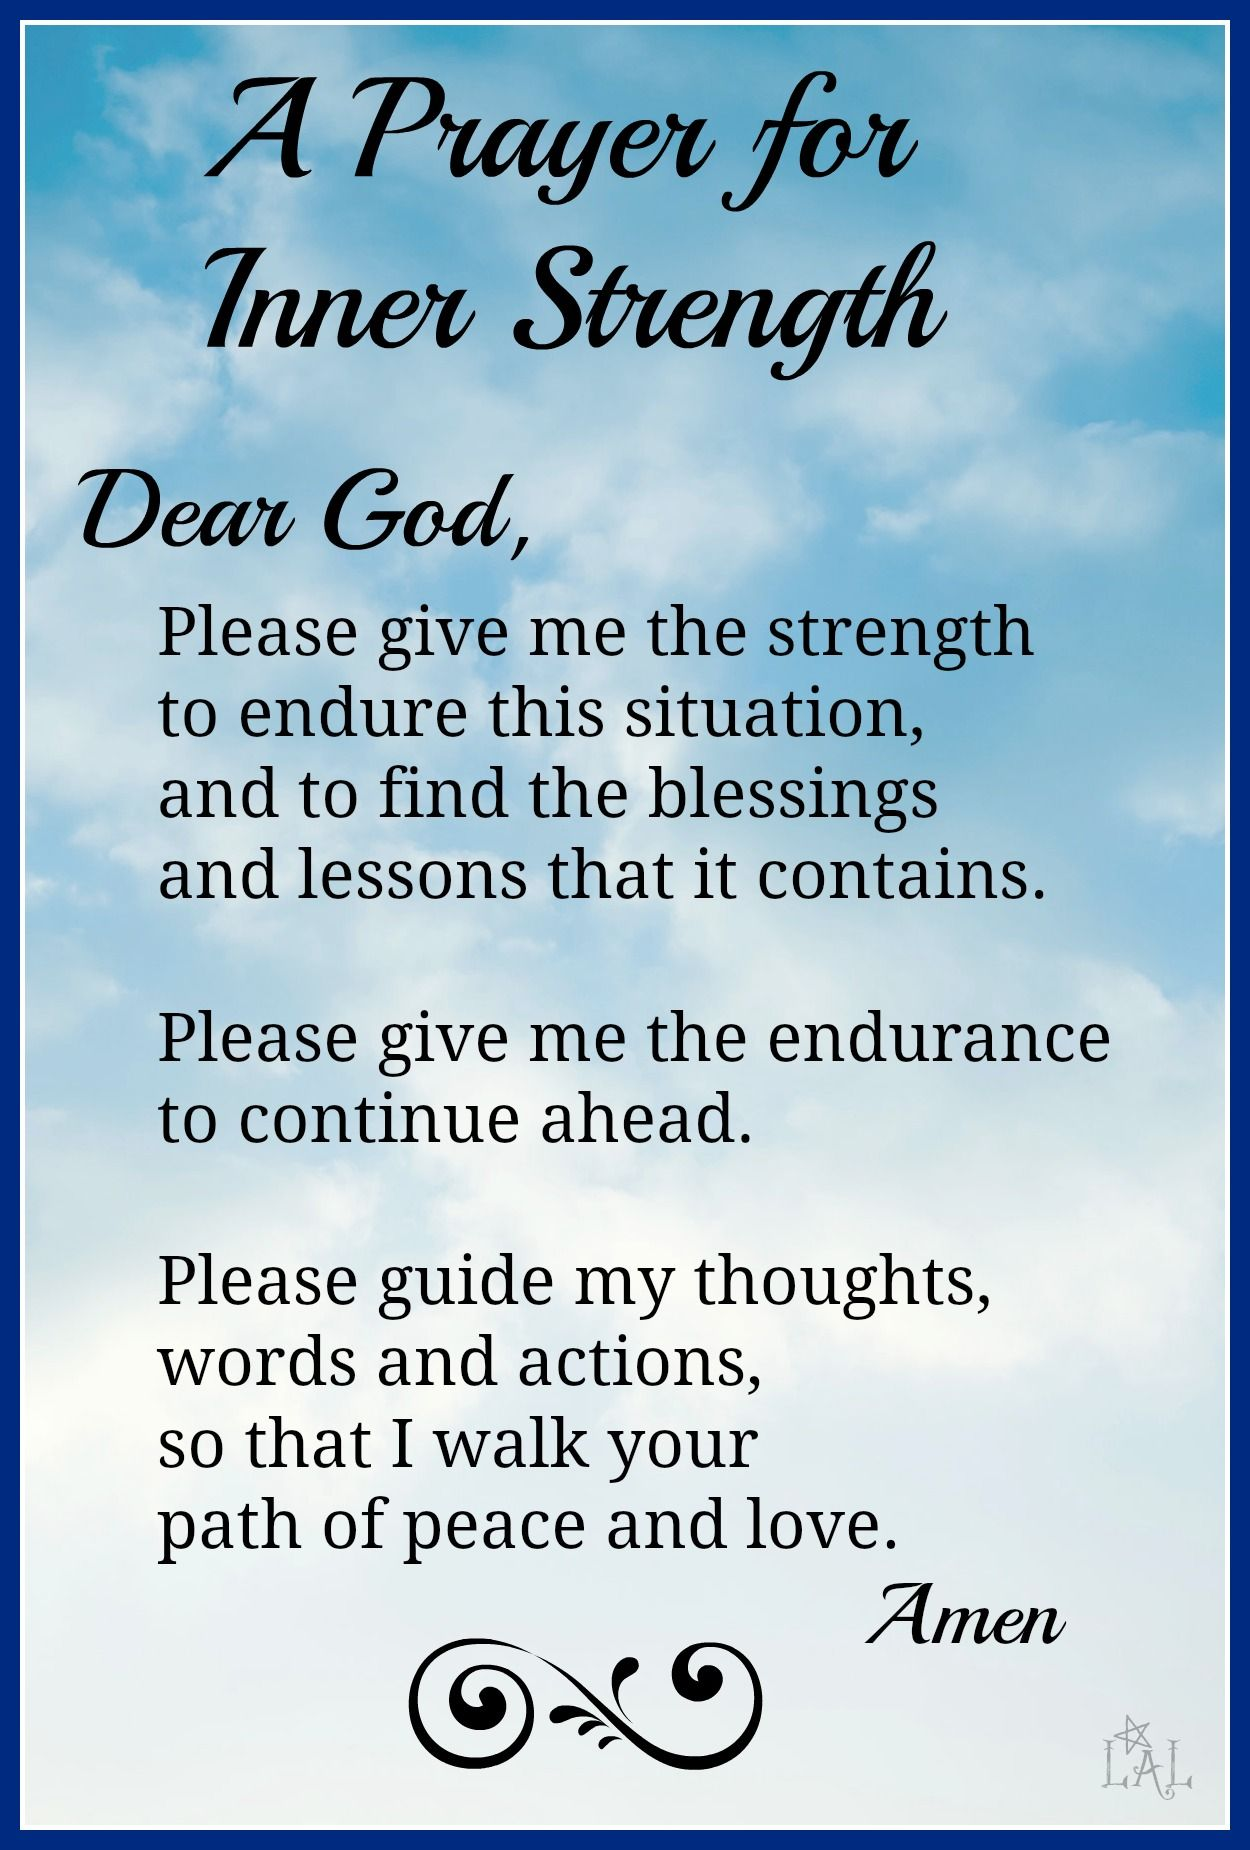 Prayer for Inner Strength Strength quotes, Strength and